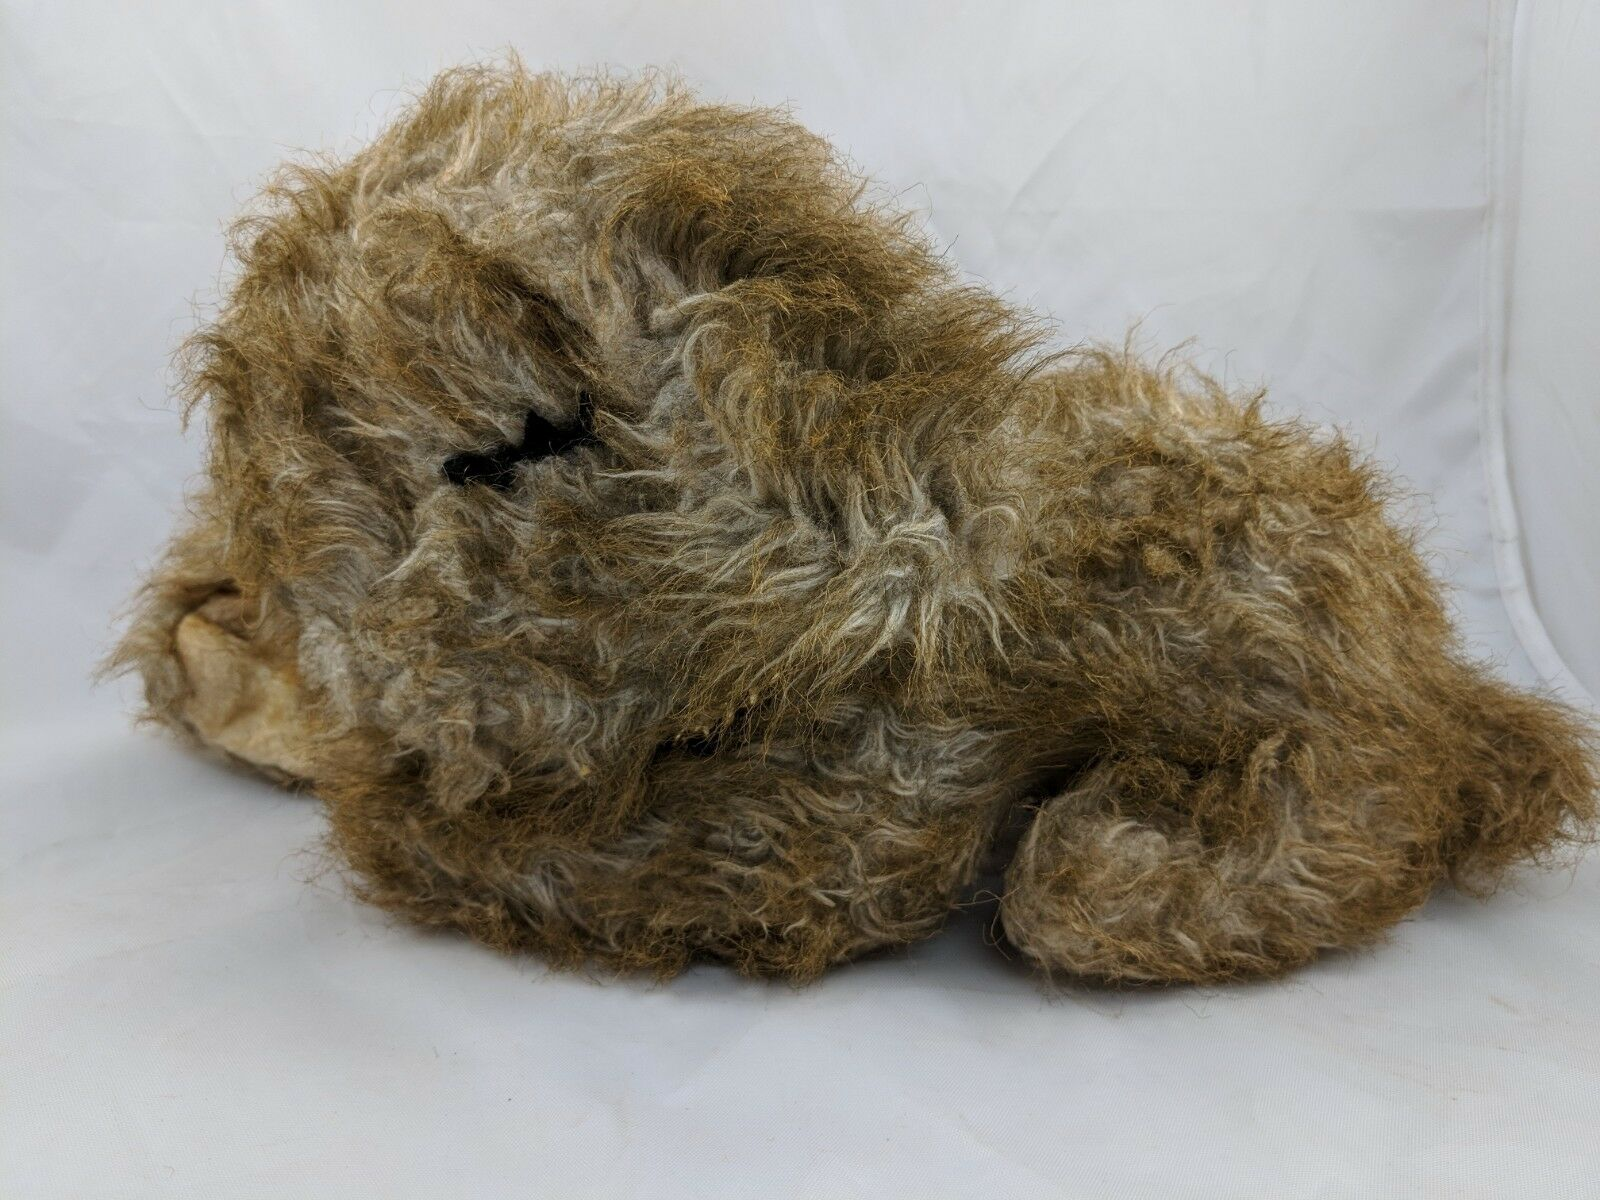 Vintage Dakin Dog Plush Puppy Japan Stuffed Animal Sleeping